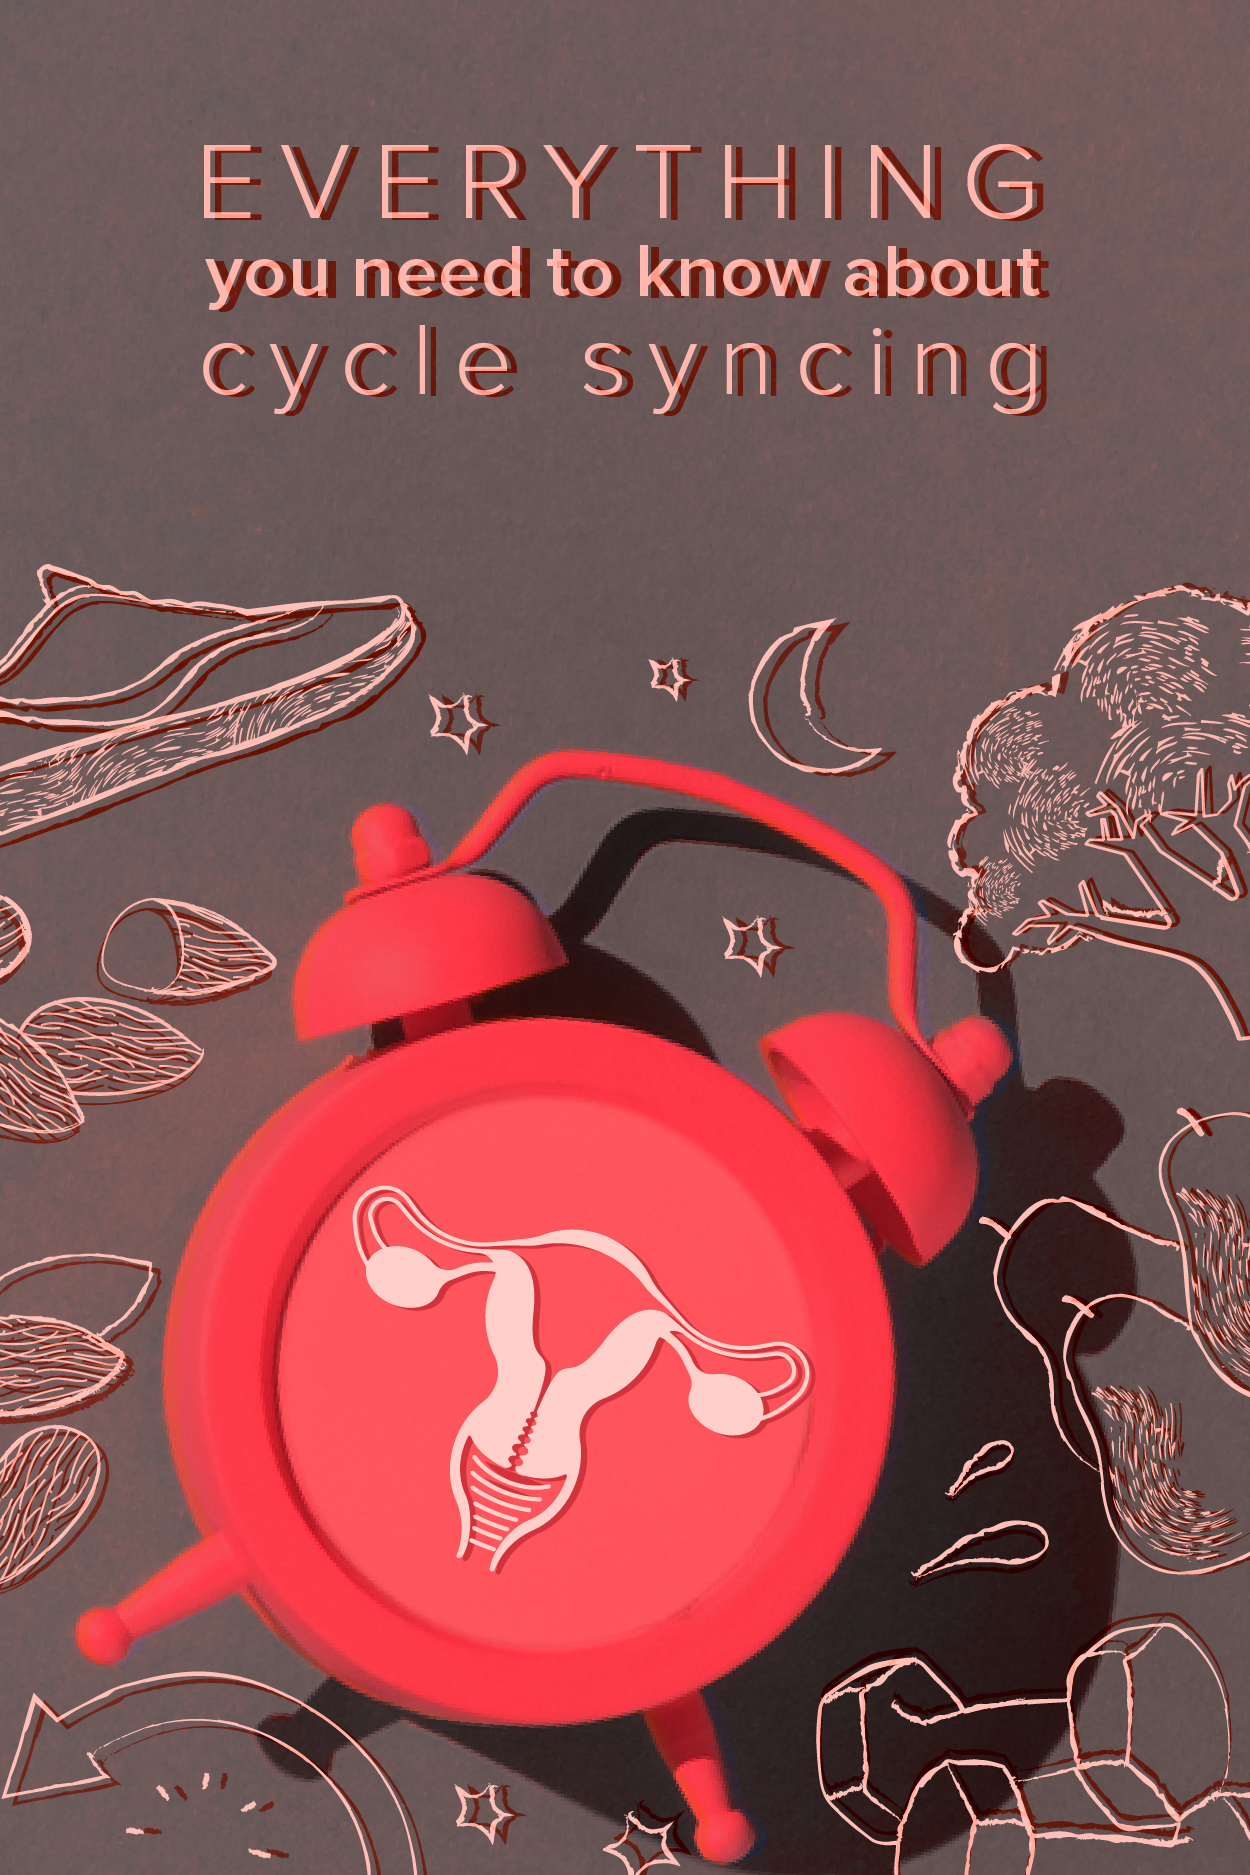 Cycle Syncing: Hormone Balancing, Exercises, Food, and More